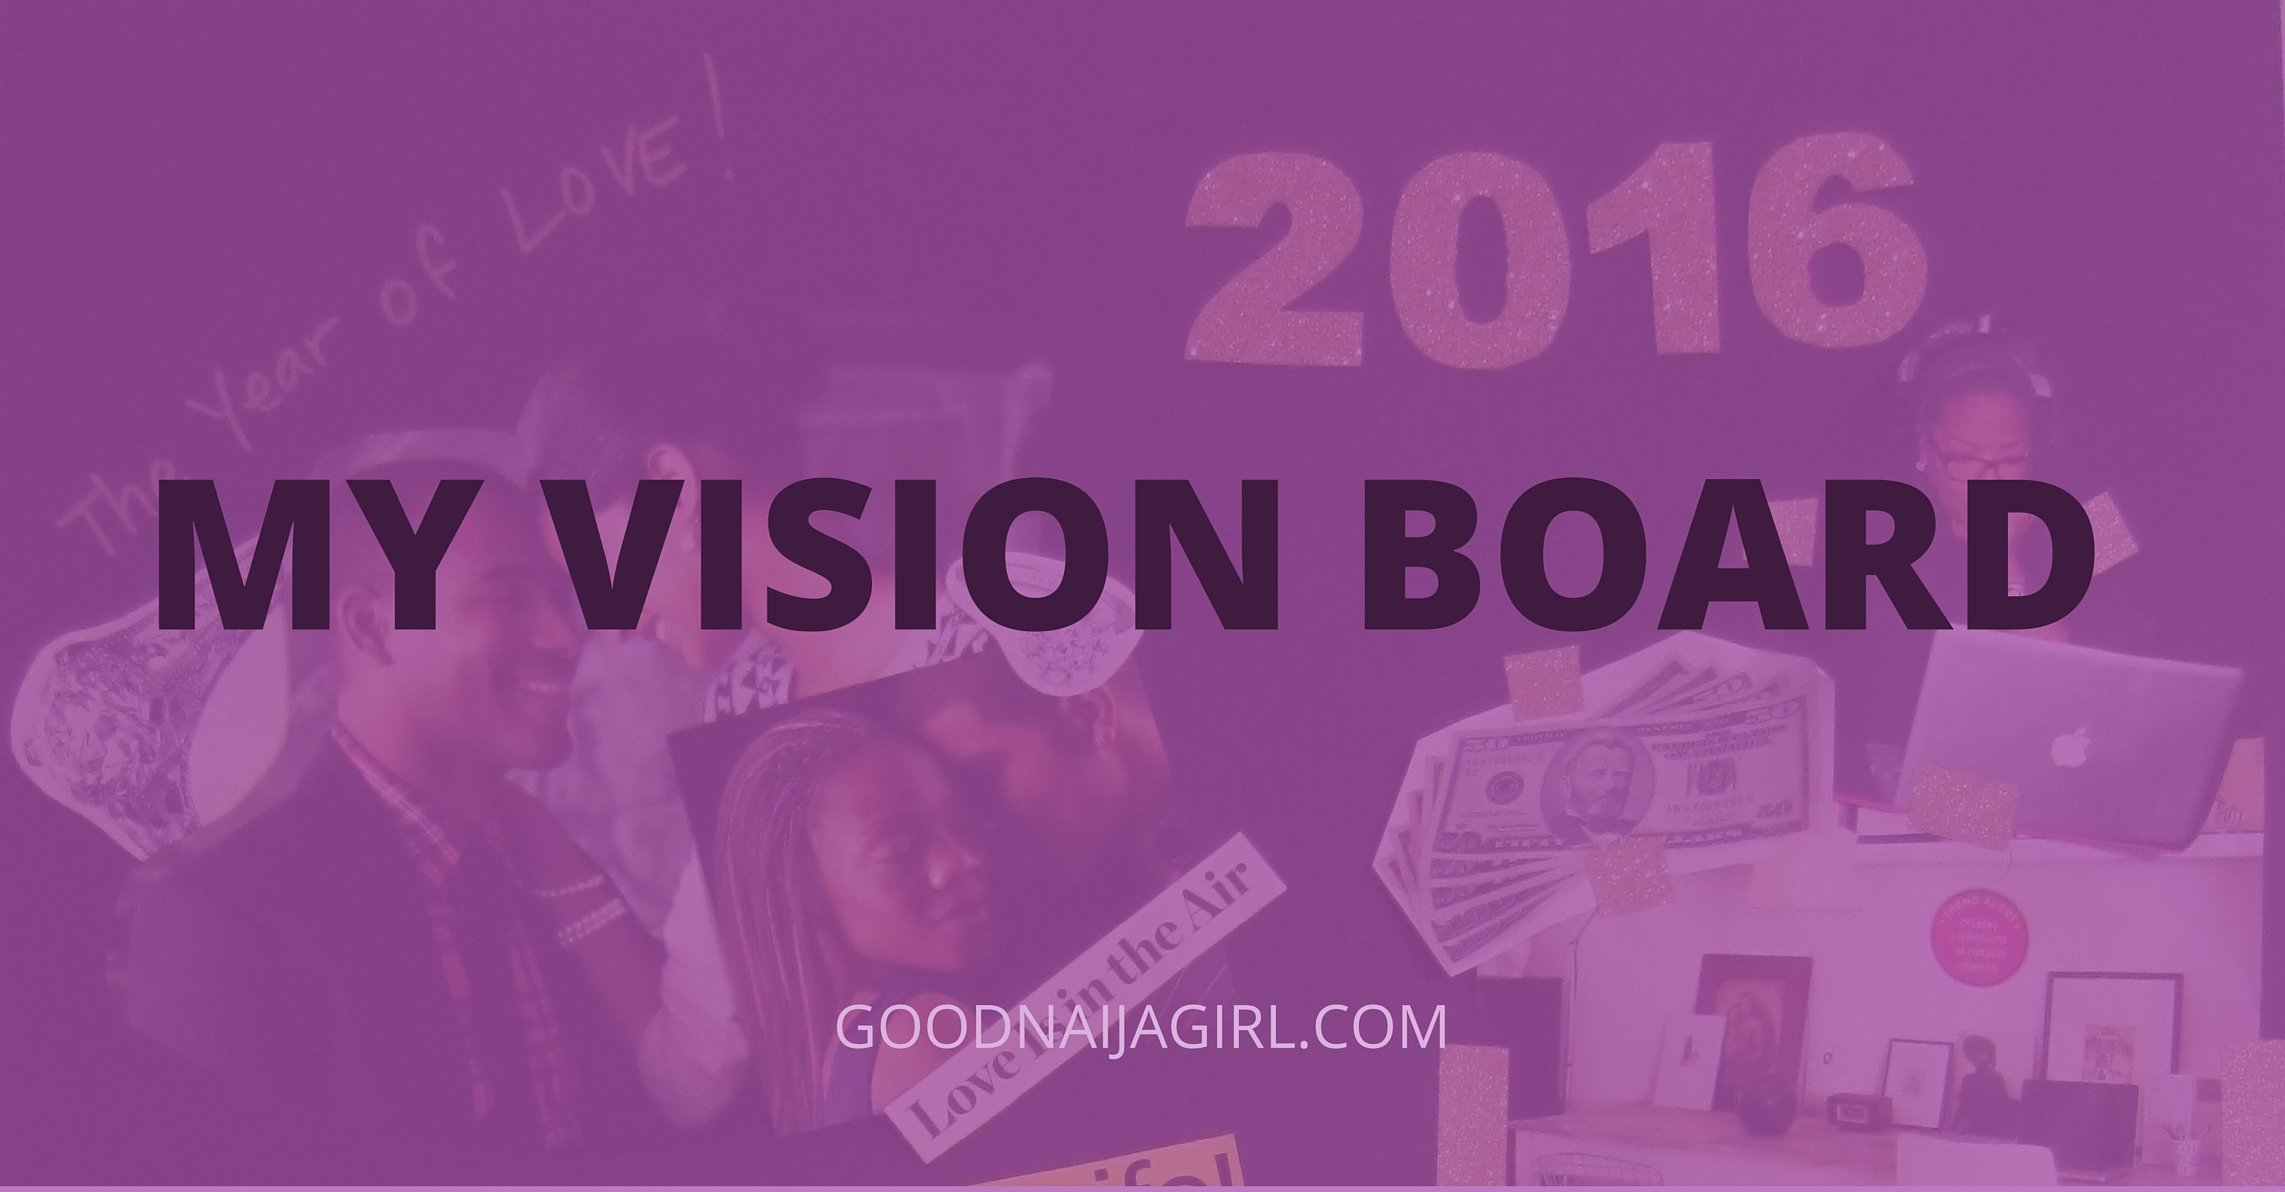 Jummy's vision board cover image